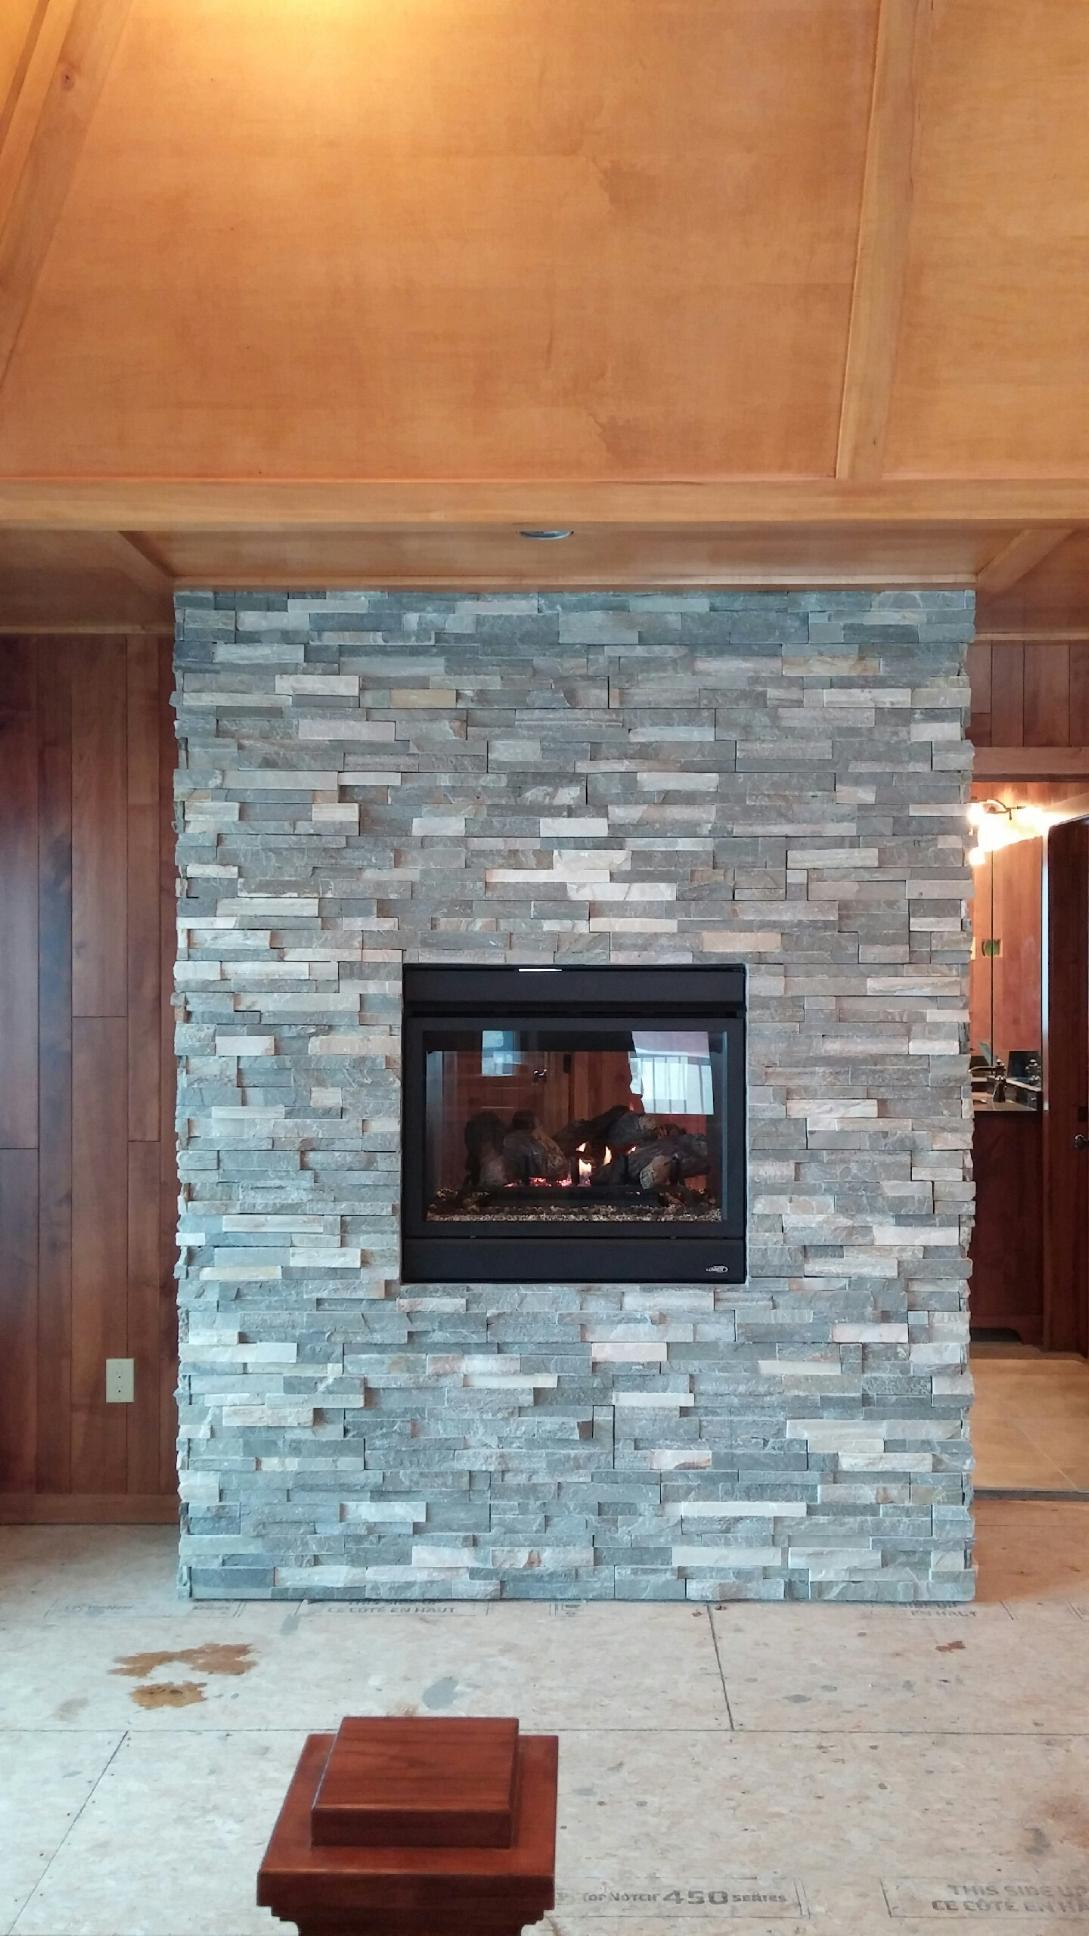 Lennox, Astria, See-thru gas fireplace